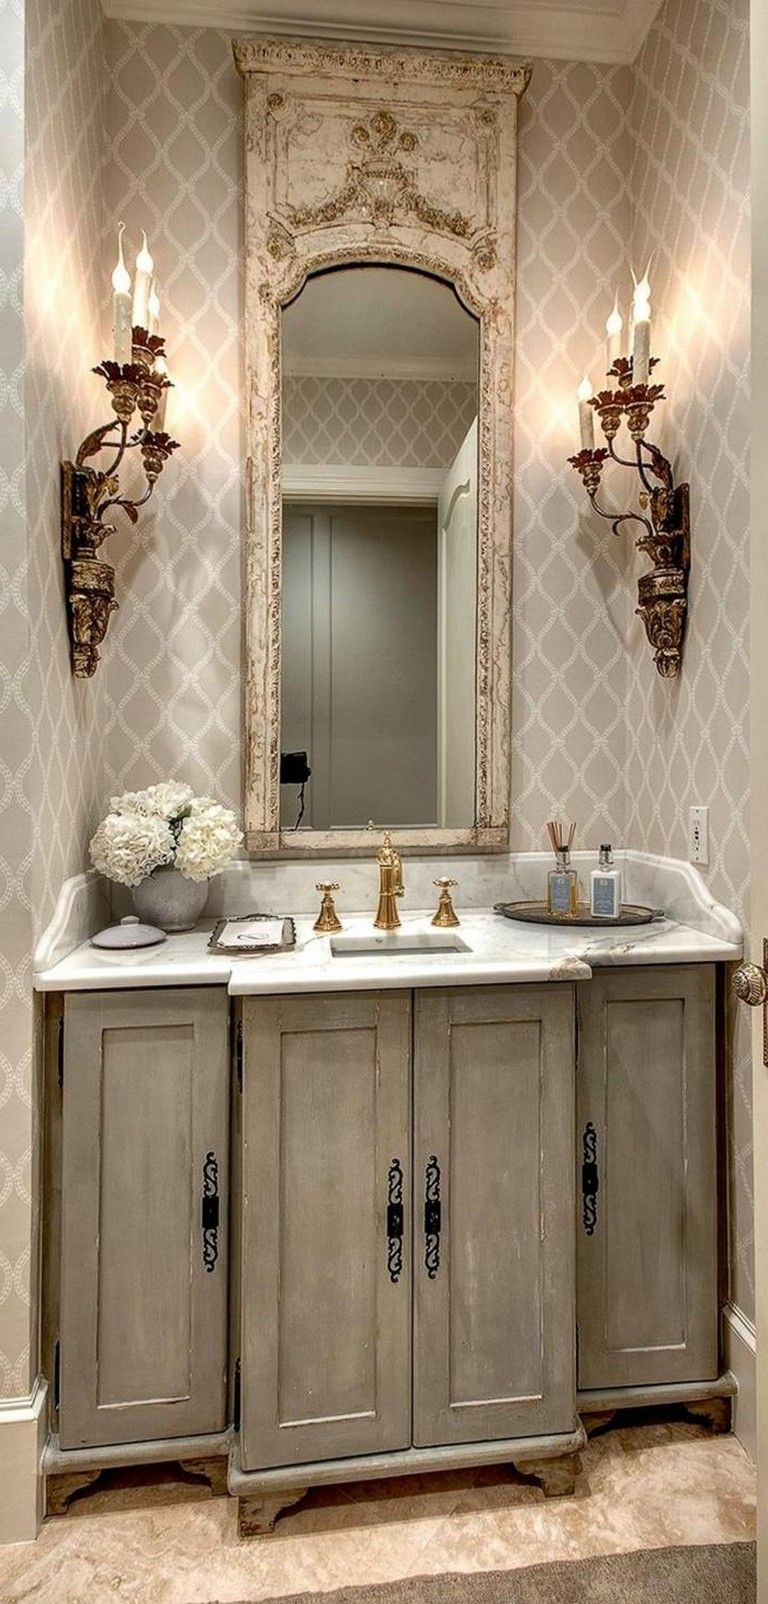 31 Easy French Country Decor Ideas On A Budget For 2018 Country Bathroom Decor French Country Decorating Bathroom French Country Bathroom